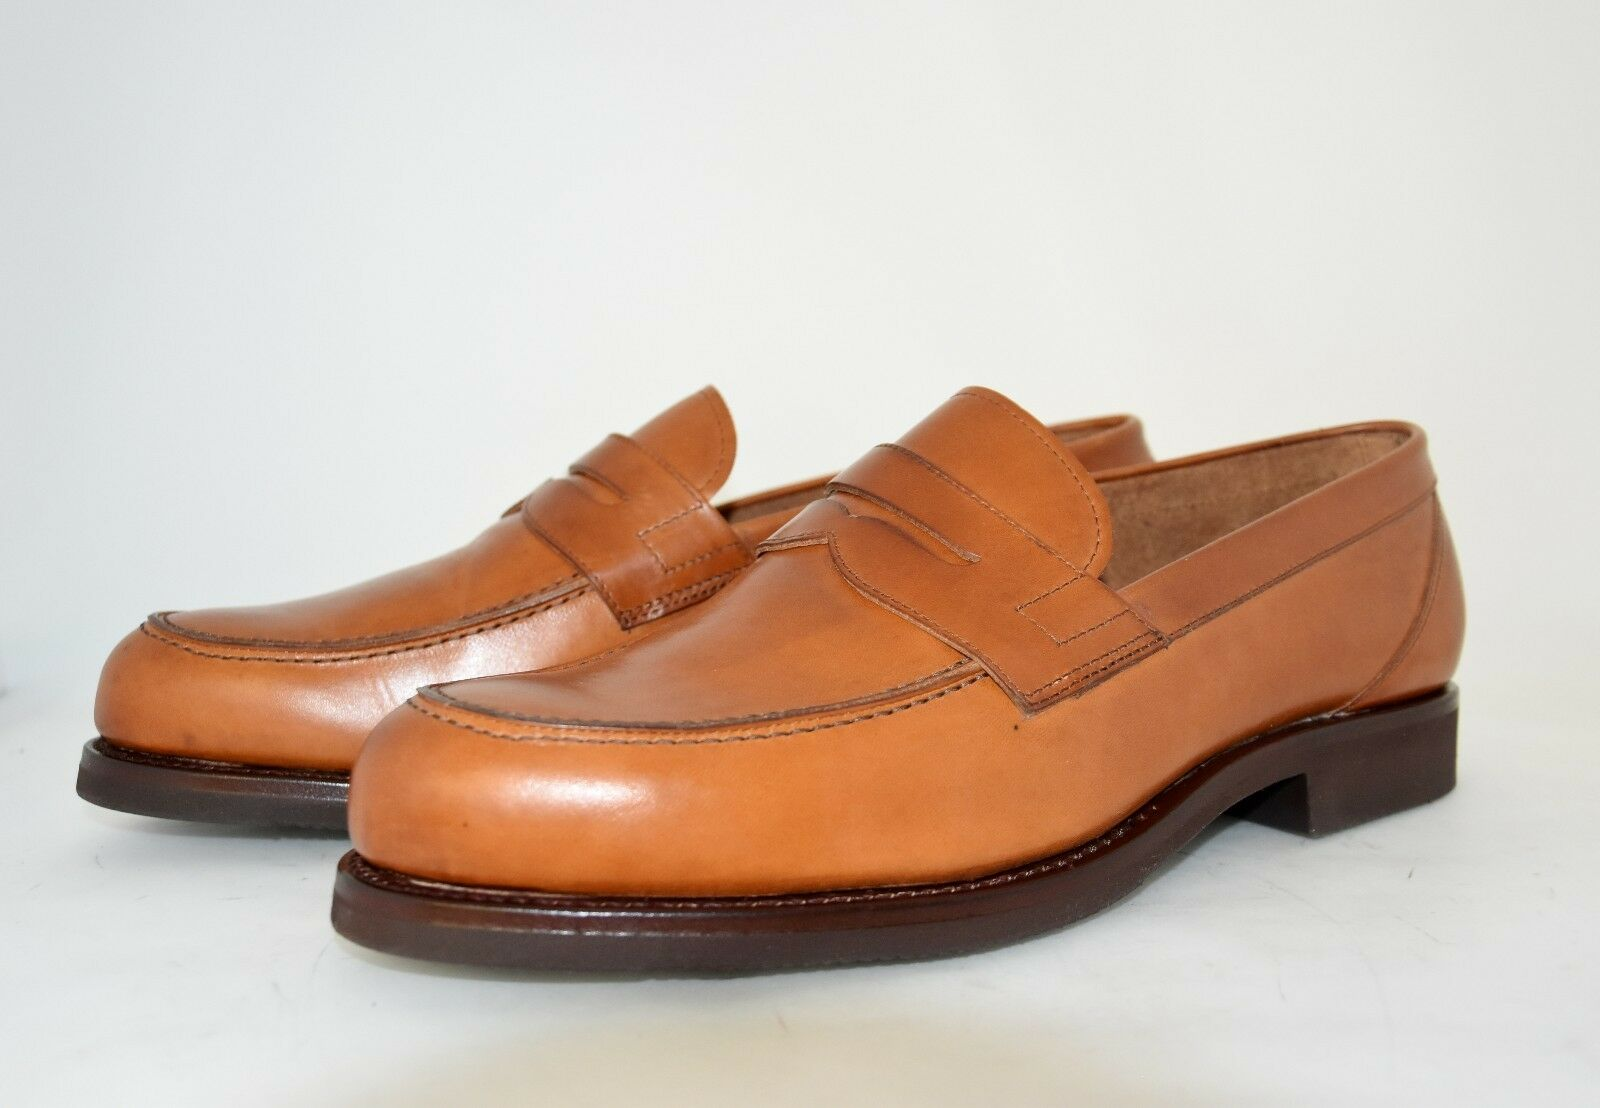 MAN-10eu-11us-PENNY LOAFER-MOCASSINO-LIGHT BROWN-LEATHER SOLE+RUBBER-CUOIO+GOMMA Scarpe classiche da uomo